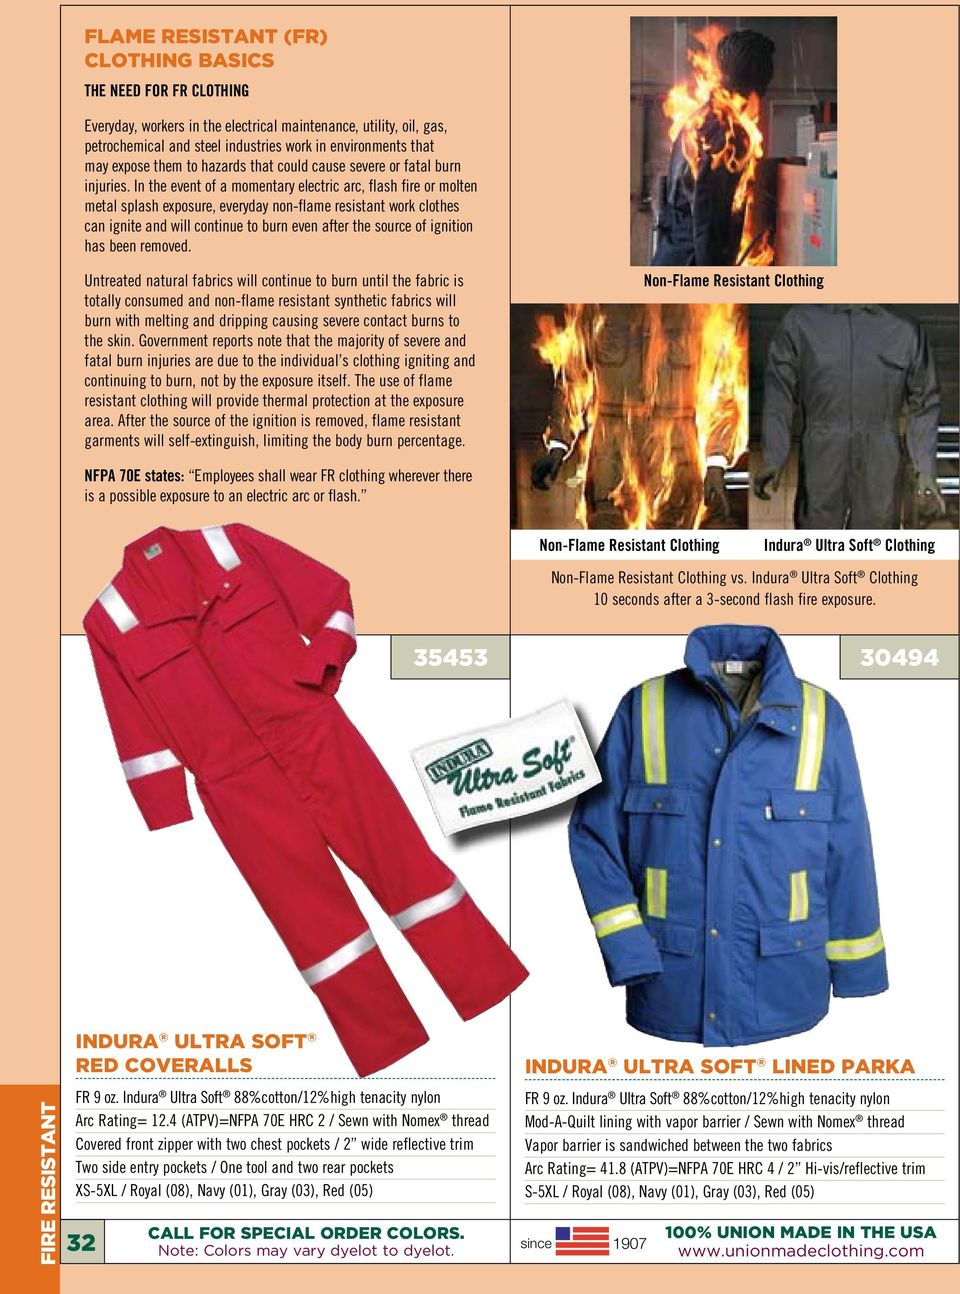 In the event of a momentary electric arc, flash fire or molten metal splash exposure, everyday non-flame resistant work clothes can ignite and will continue to burn even after the source of ignition